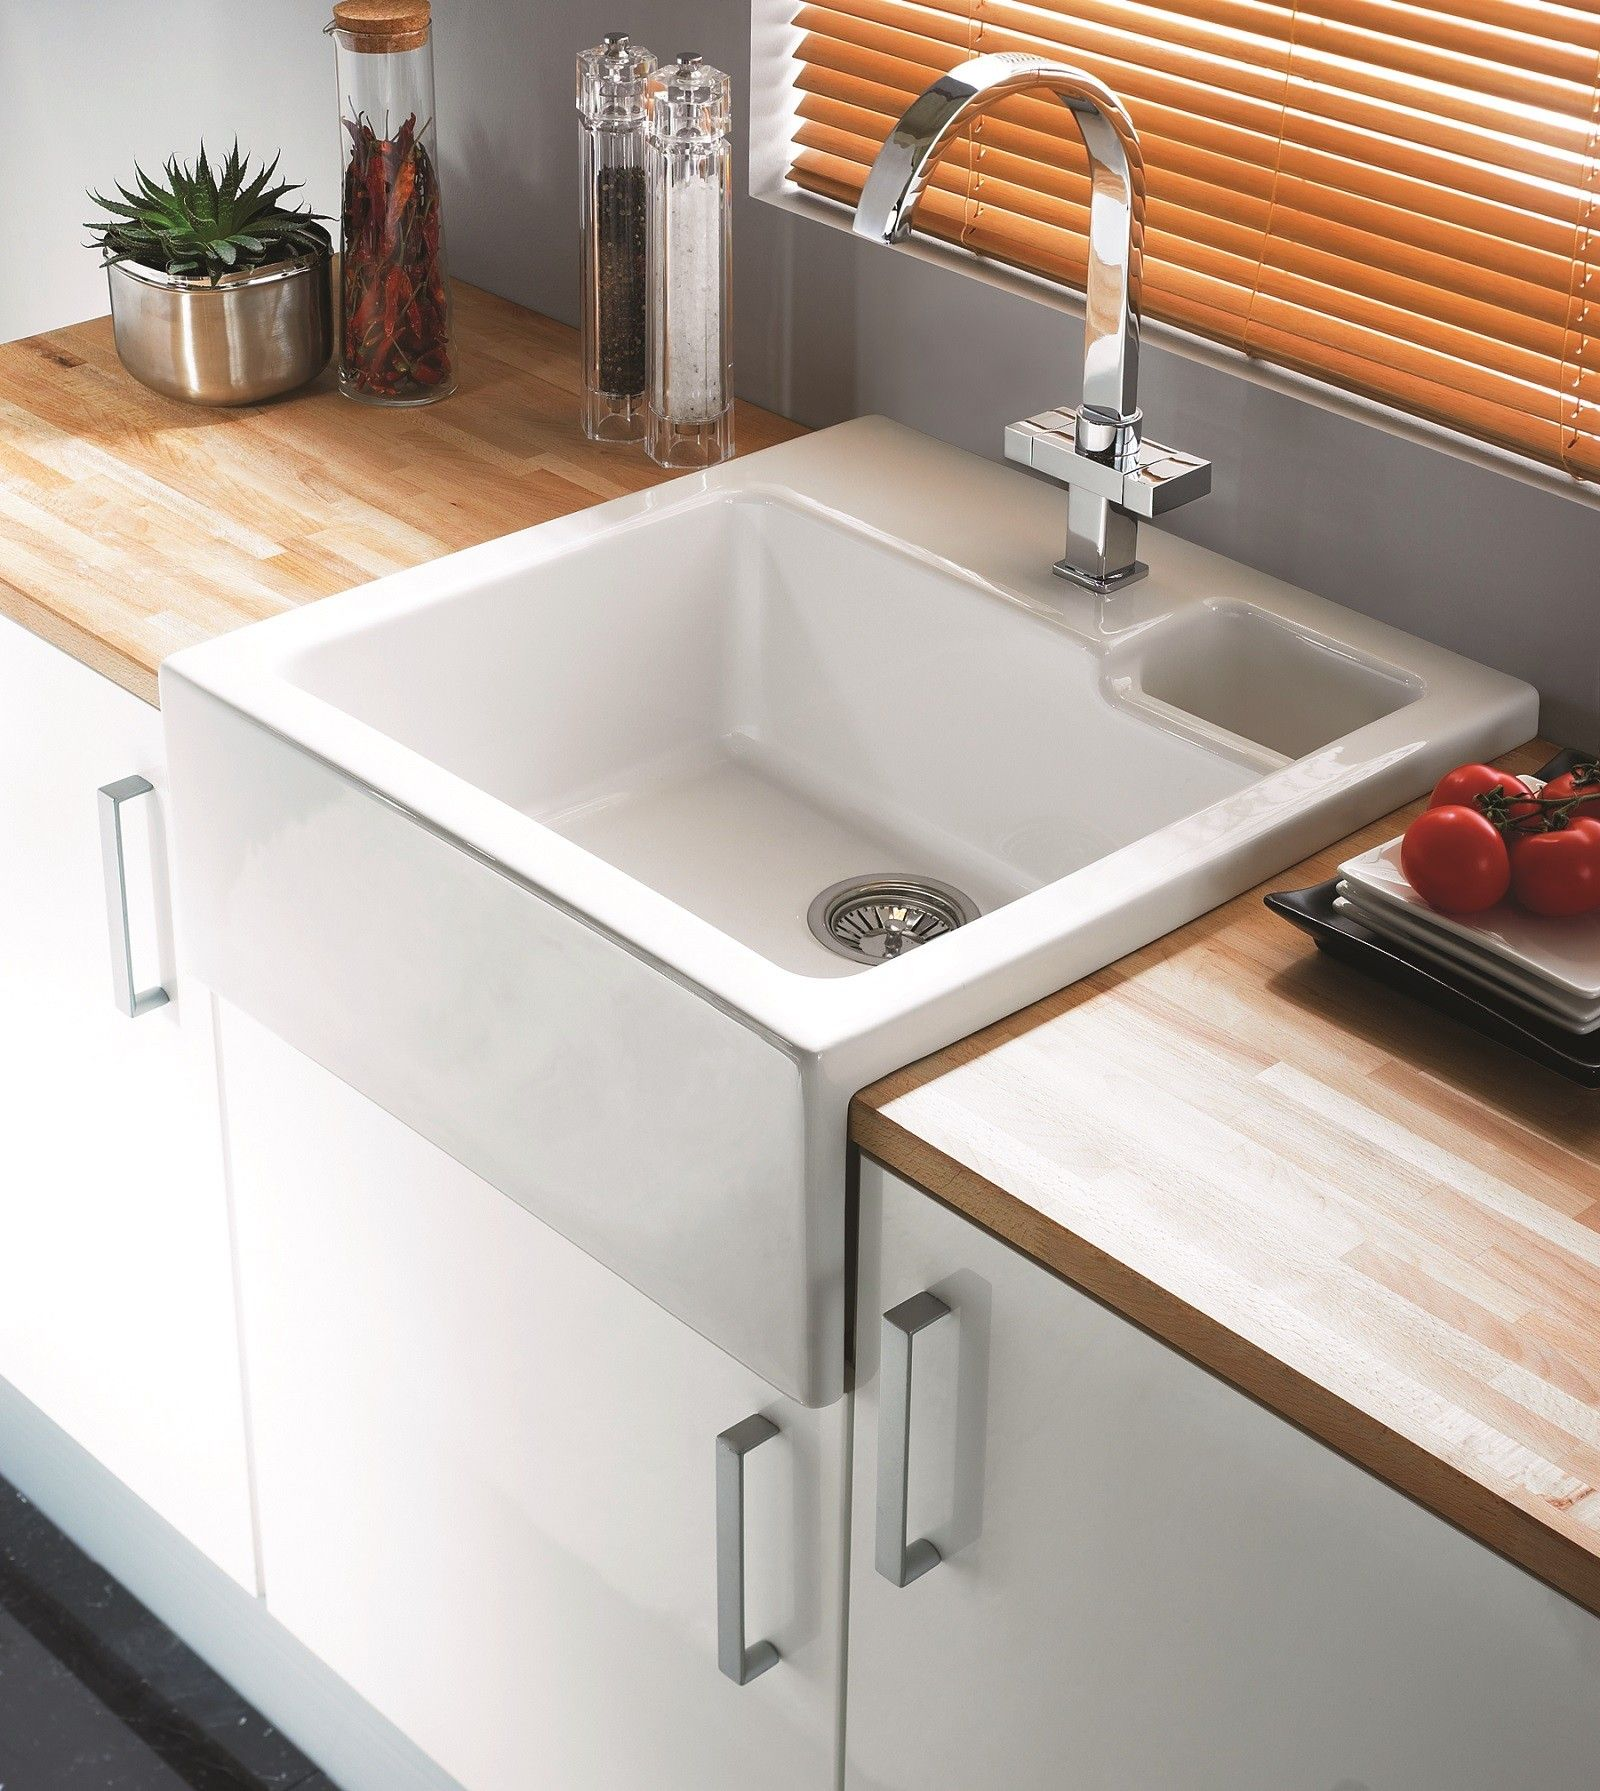 Belfast Sinks Taps Appear In Many American High End Home